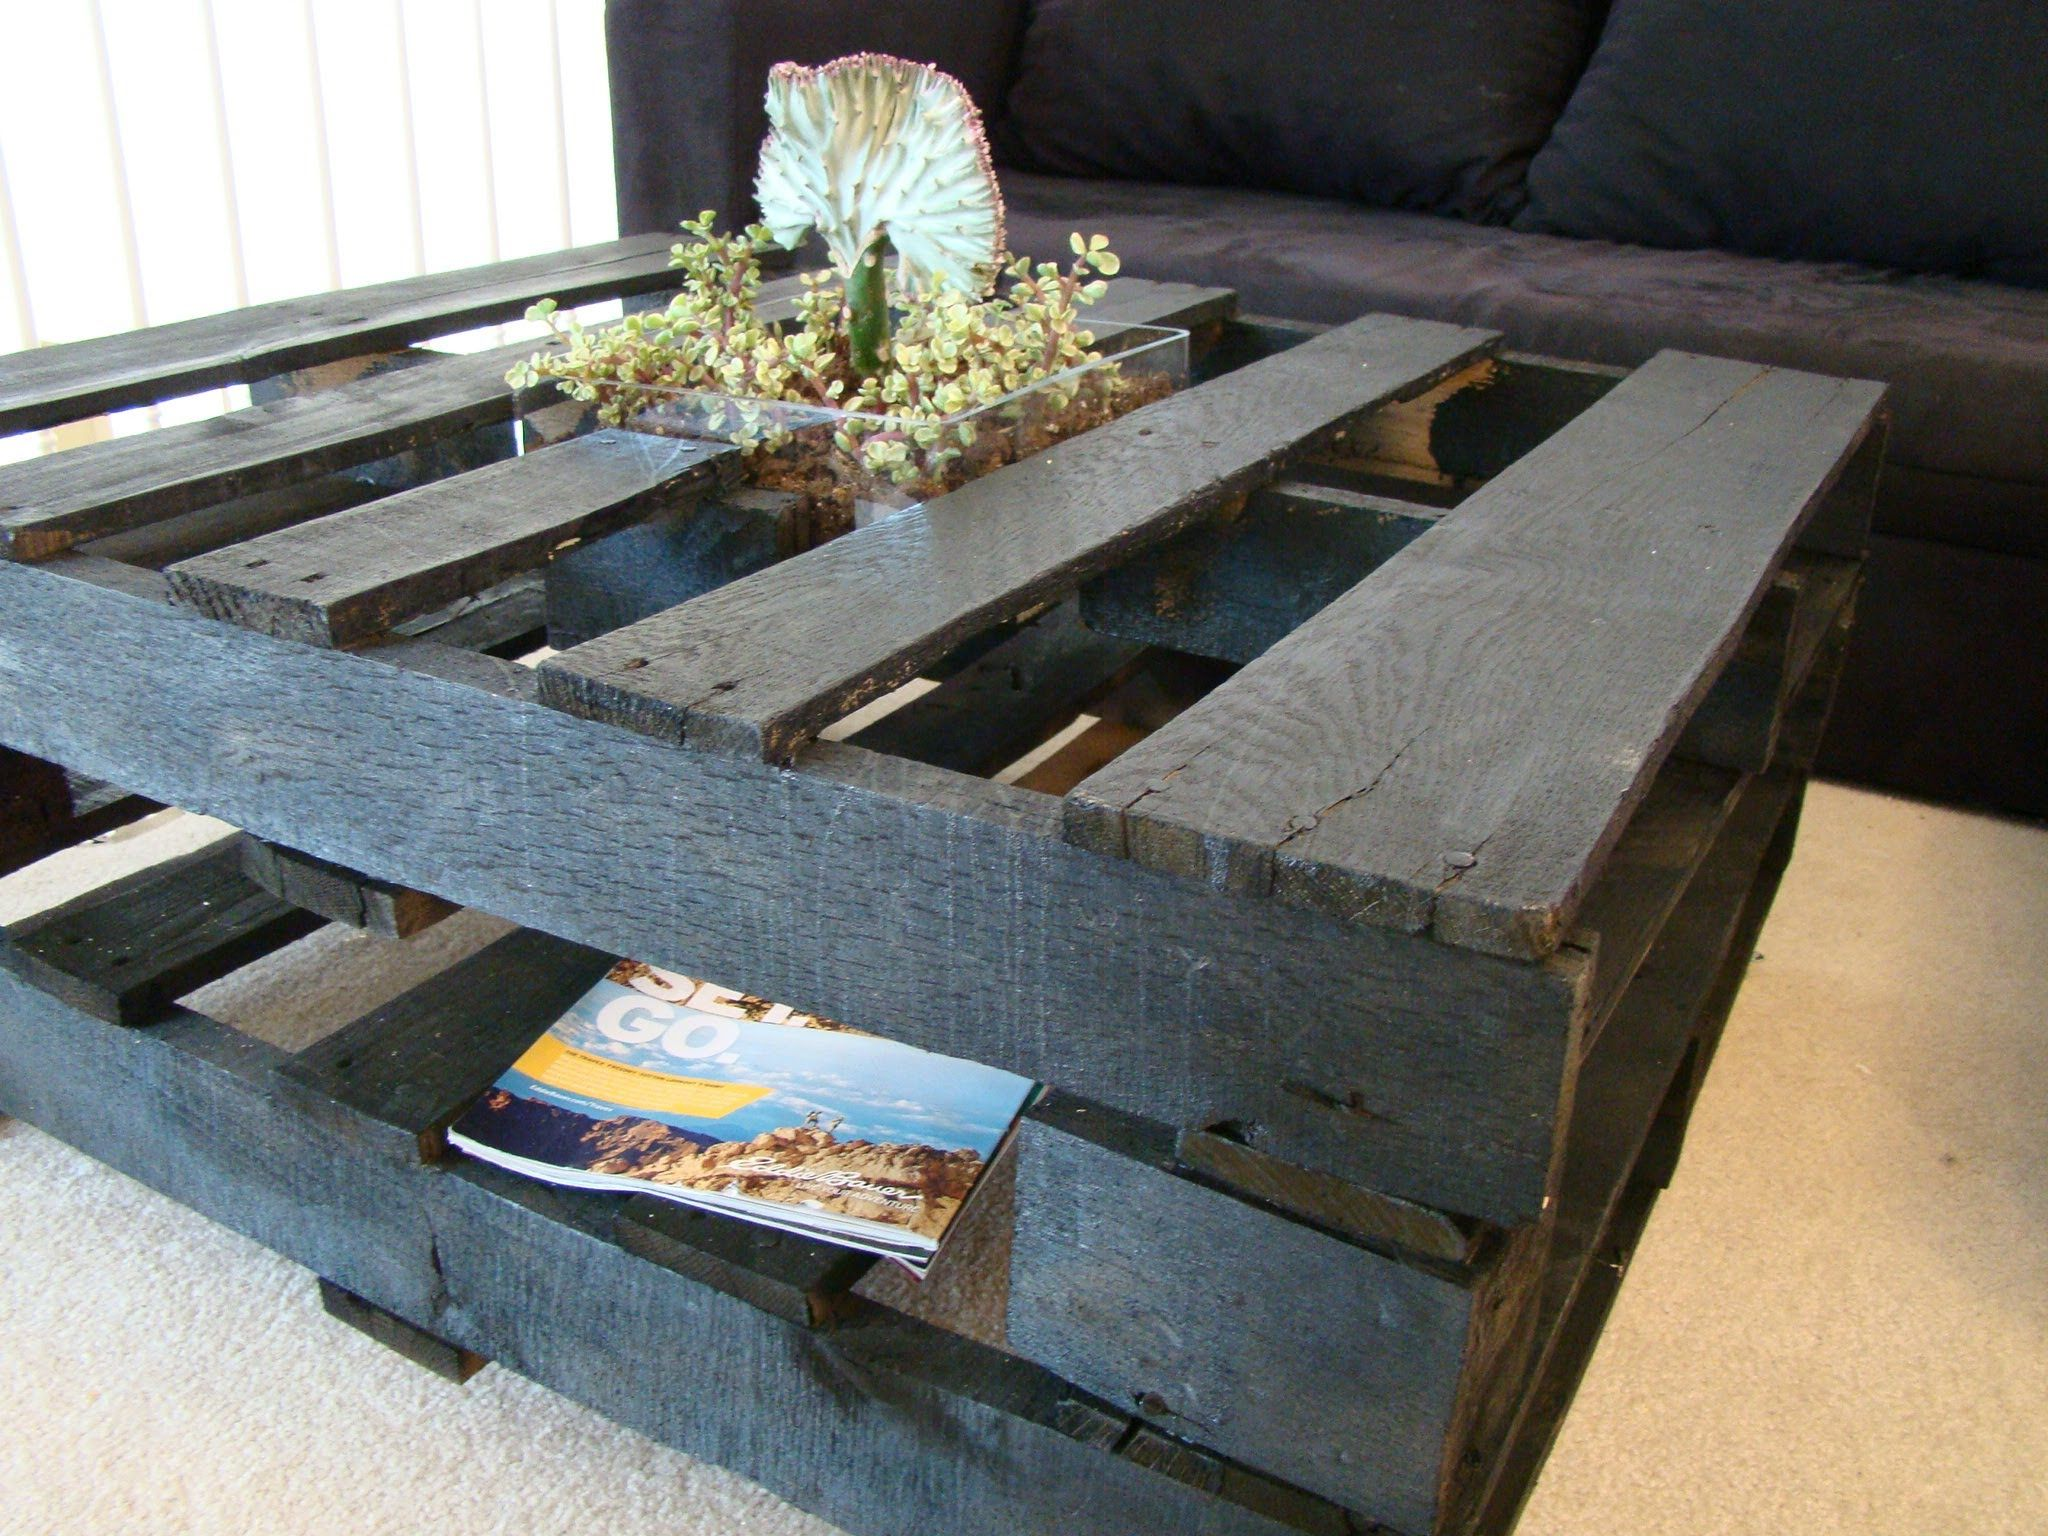 How To Make A Coffee Table Out Of Pallets Wanna Make A Coffee Table Out Of